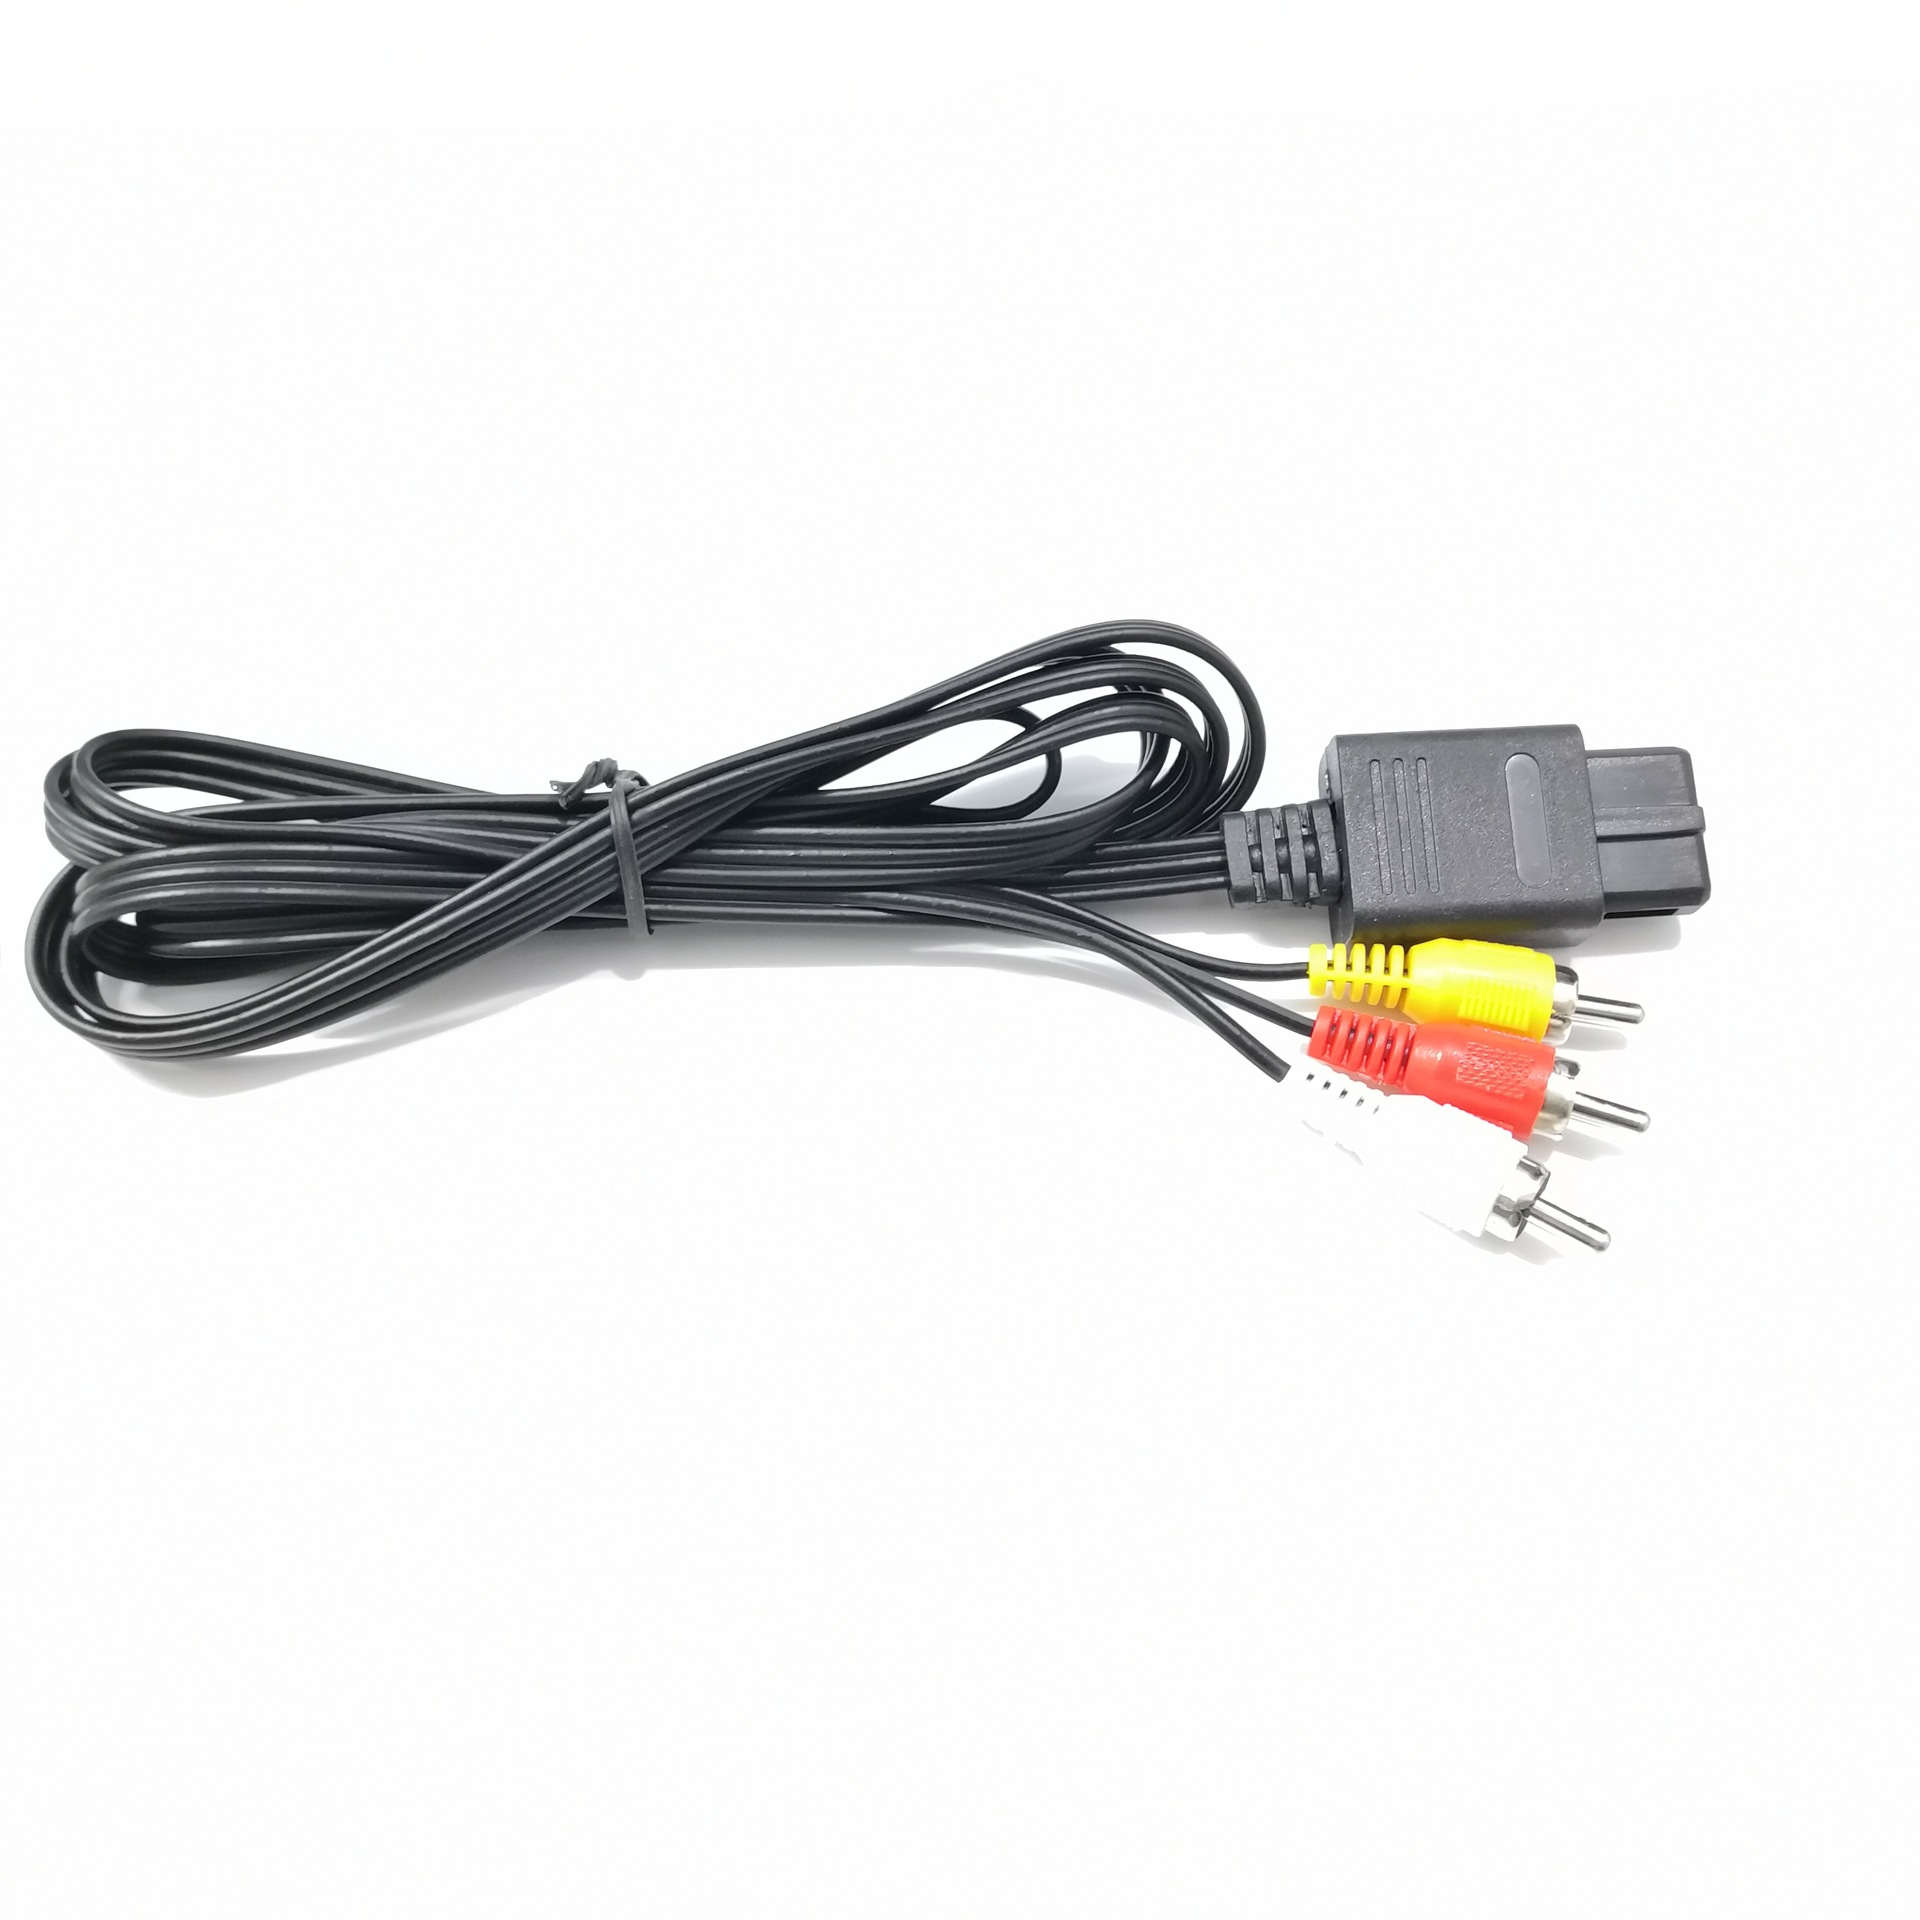 1.8m Video Game Console AV Cable Audio Video Cord Cable for Nint